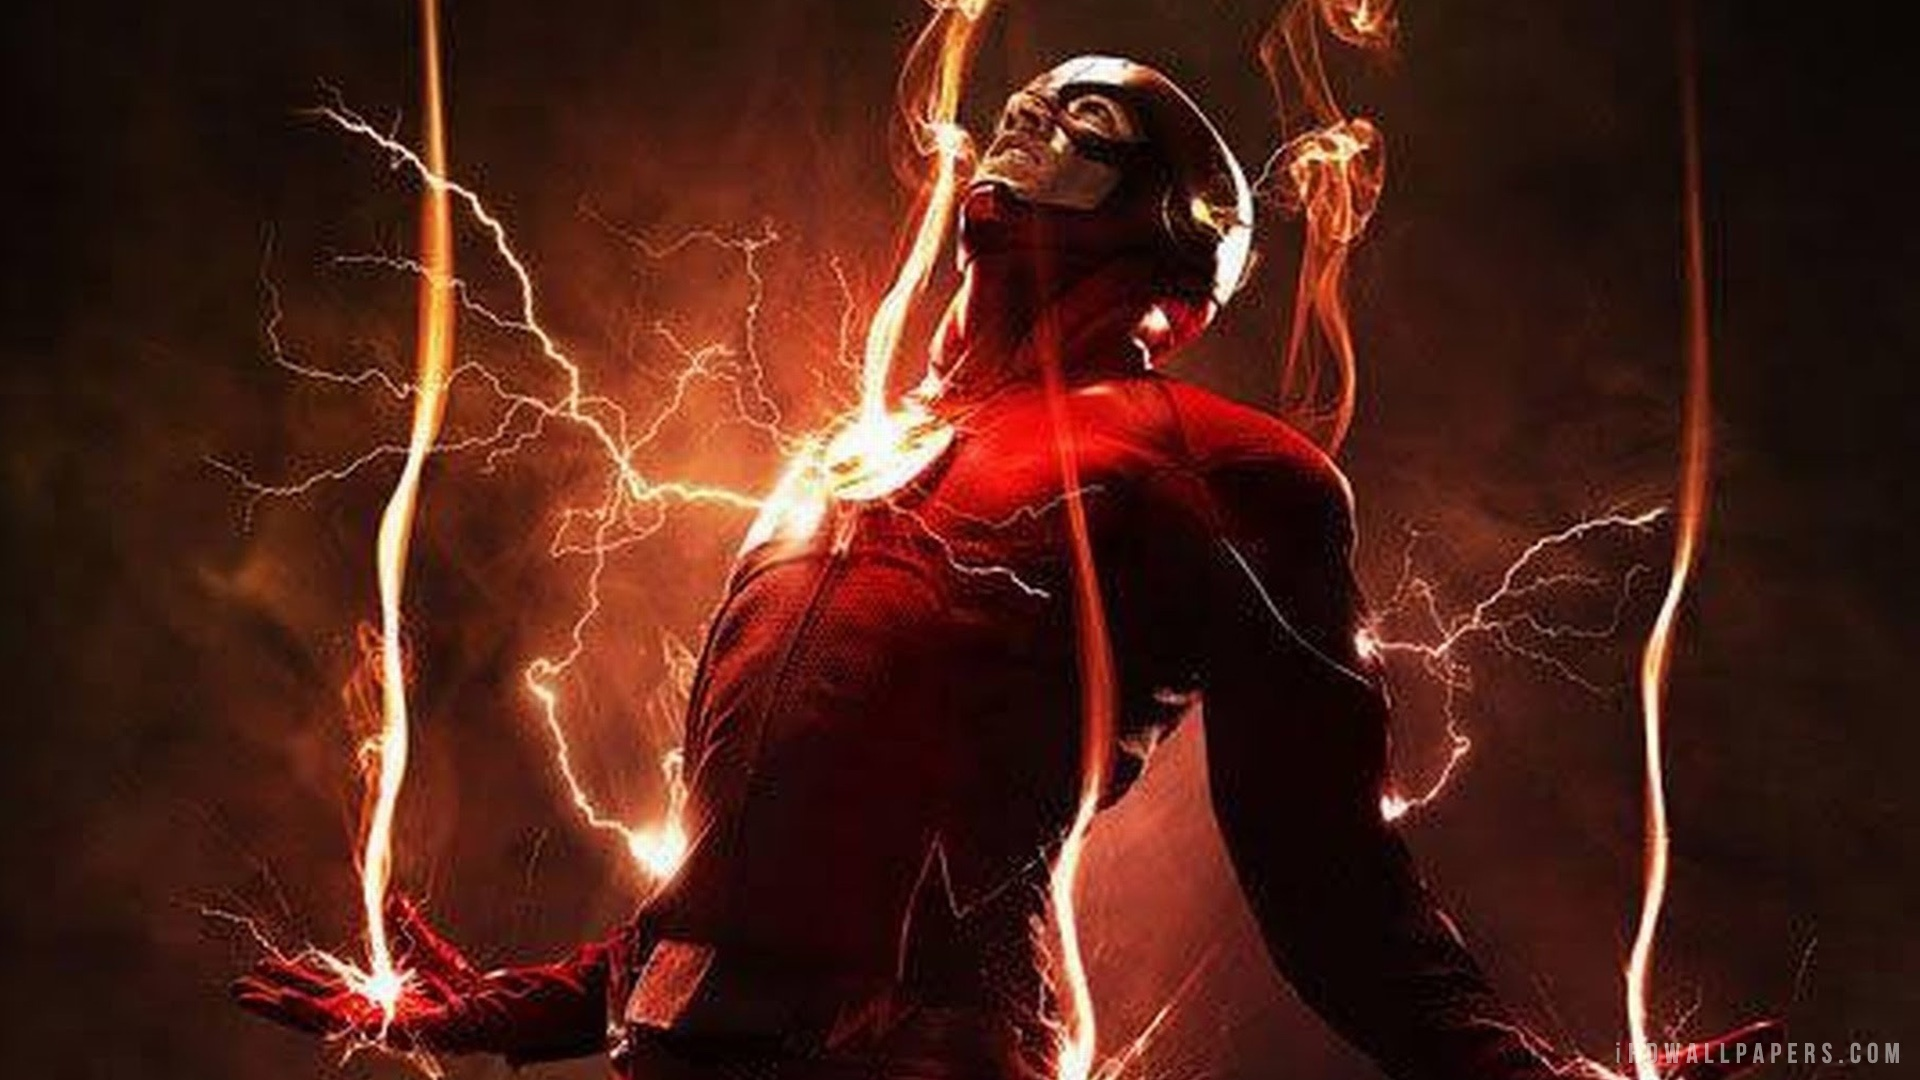 flash wallpaper hd Download